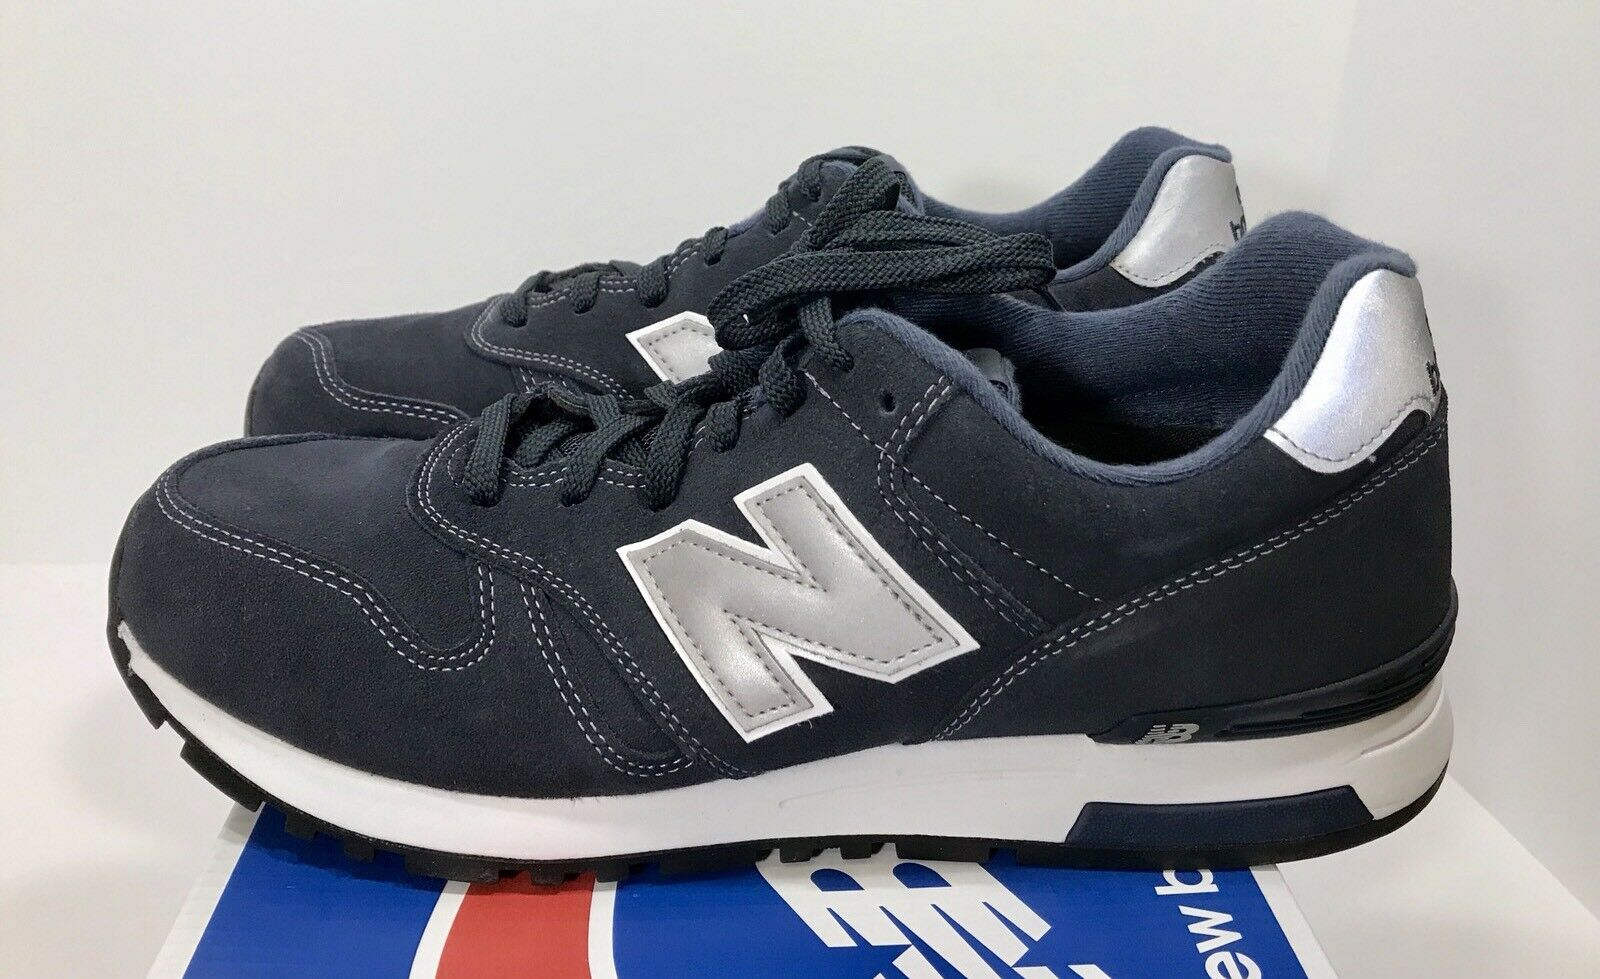 New Balance 565 Men's Talla 12 Classic zapatillas ML565NV Navy azul NEW